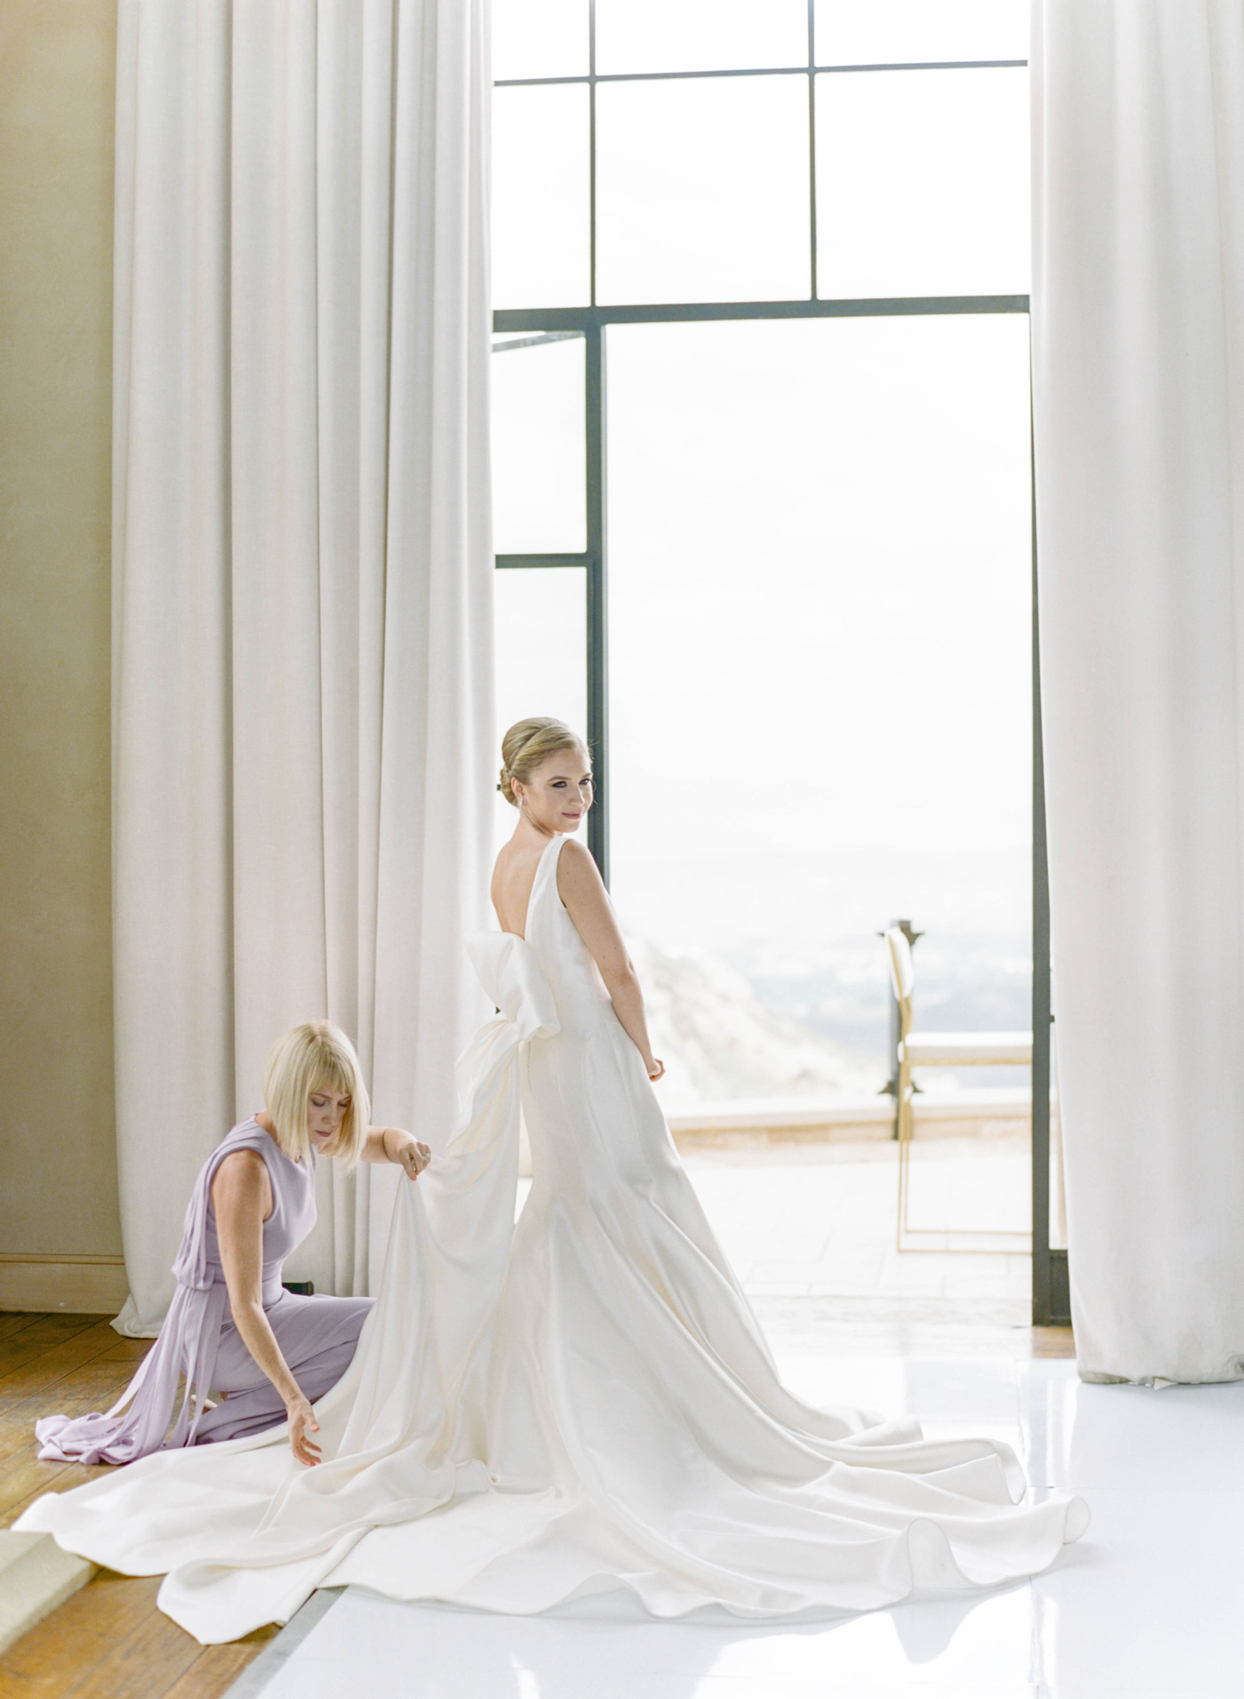 bride standing in front of window with woman adjusting train of gown